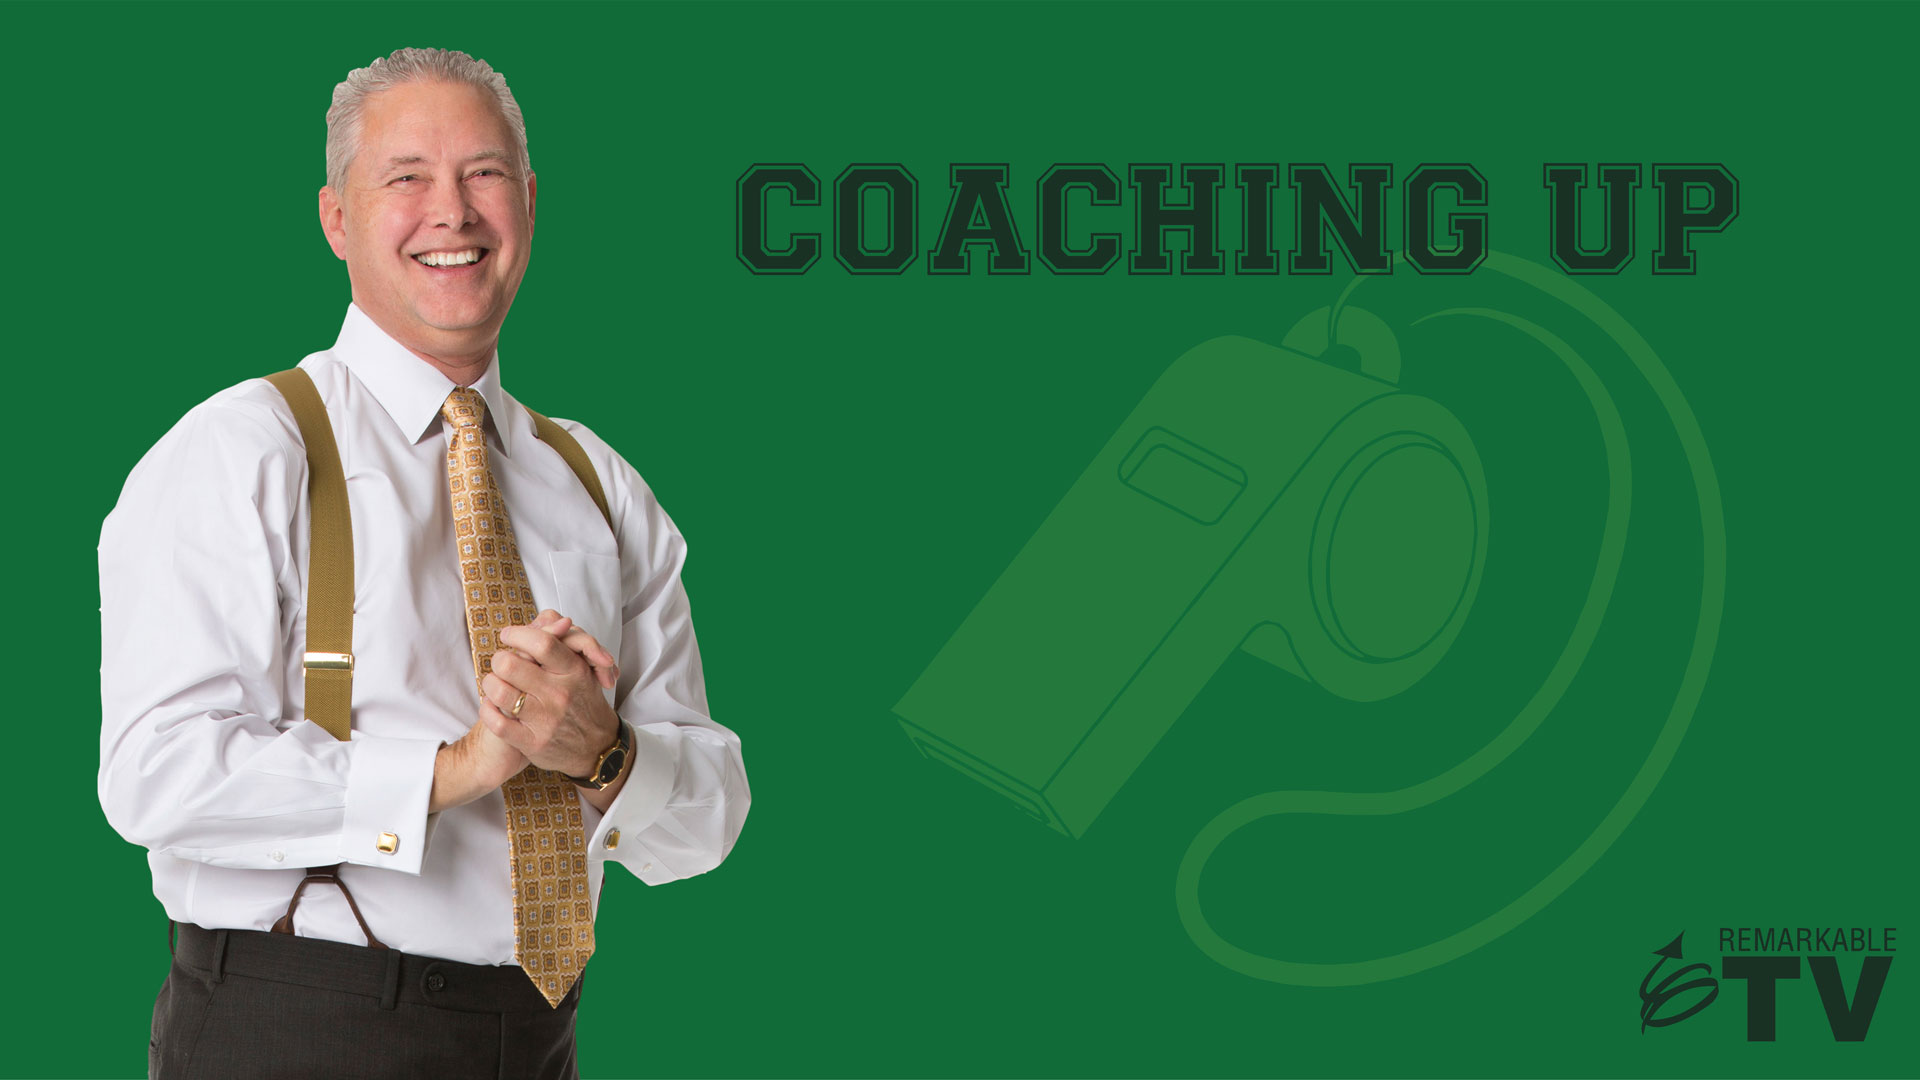 Coaching Up - Remarkable TV by Kevin Eikenberry